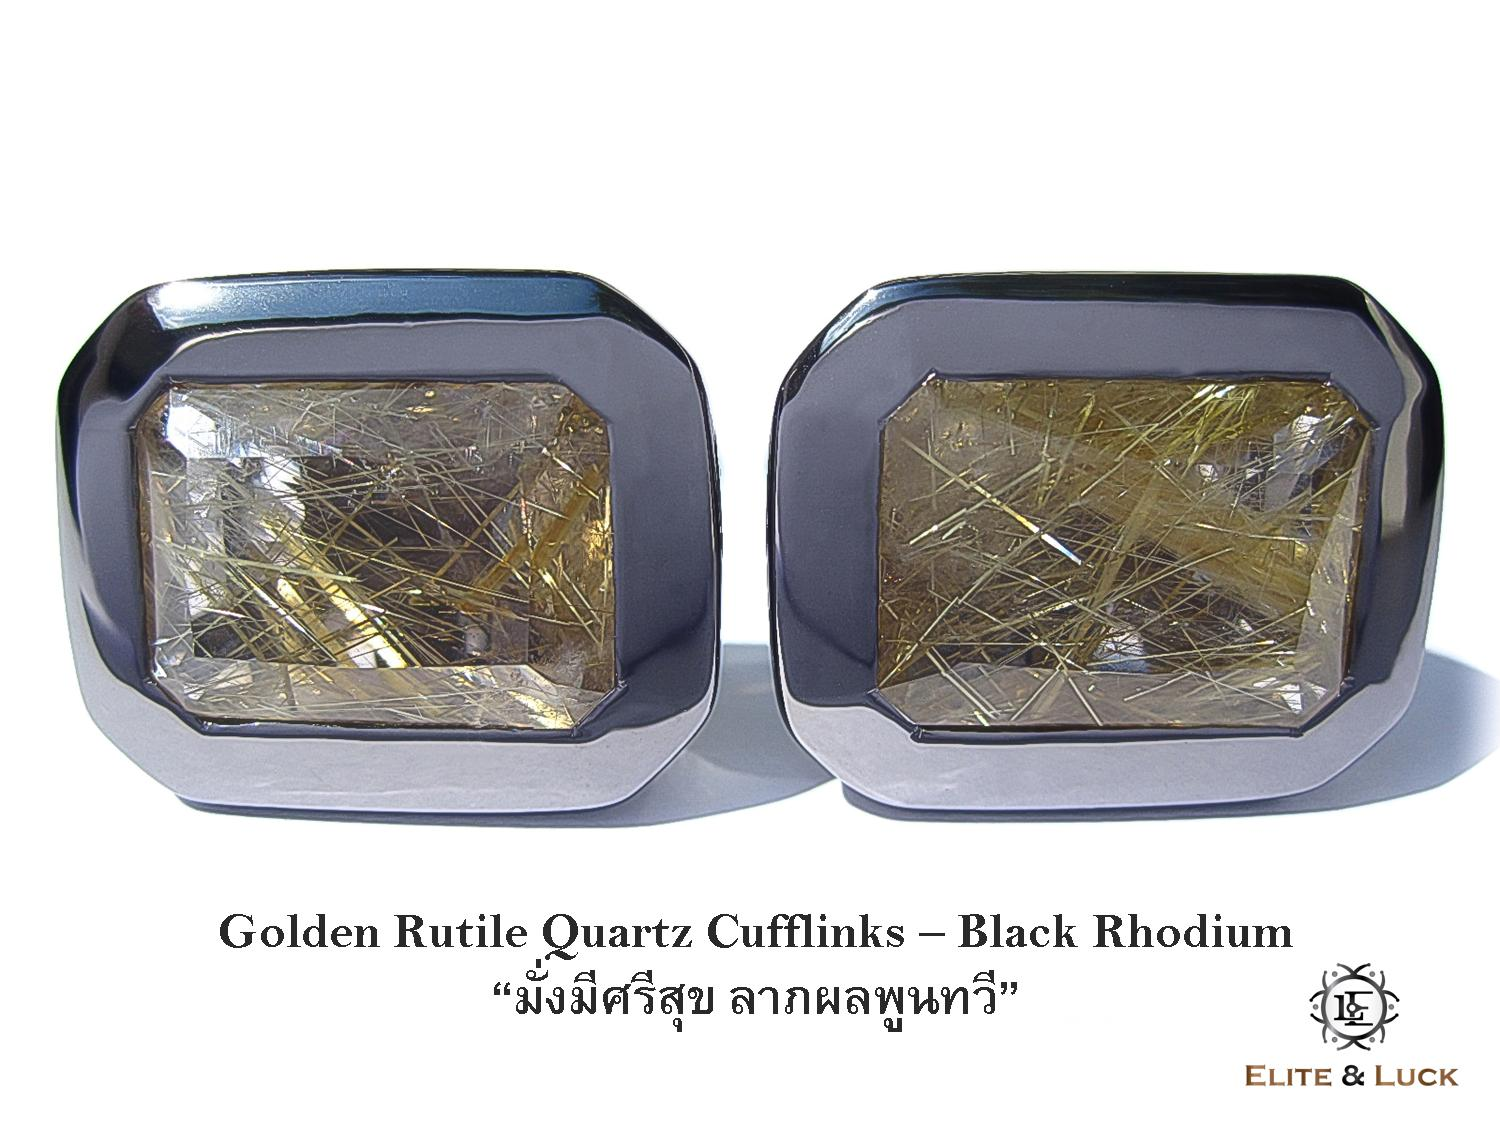 Golden Rutile Quartz Sterling Silver Cufflinks สี Black Rhodium รุ่น Classic